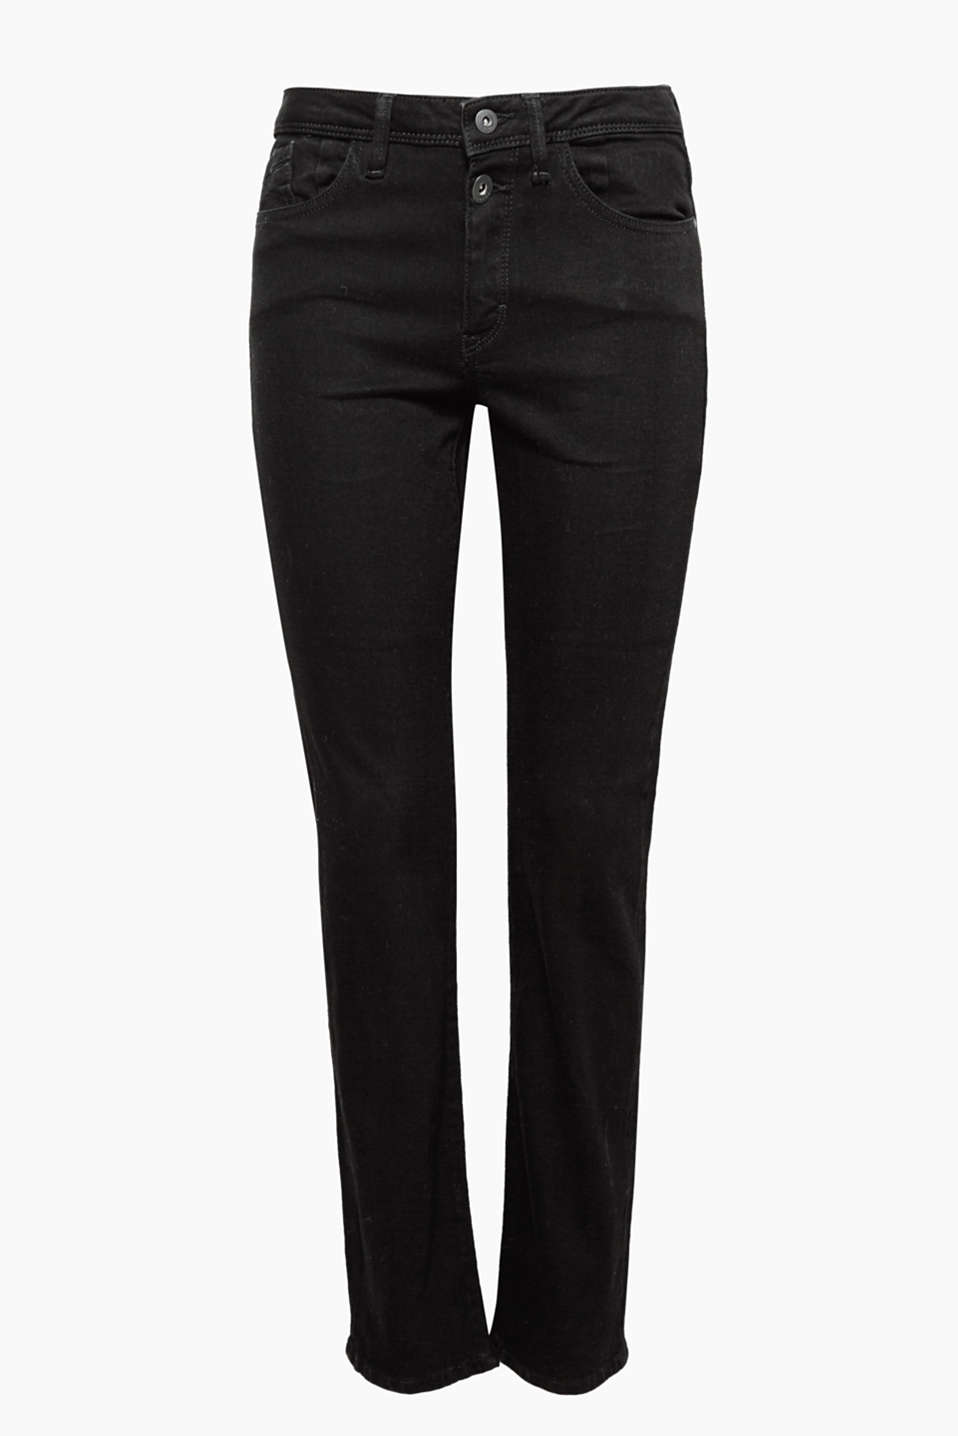 Perfect for any situation: Straight five-pocket jeans made of black cotton denim with added stretch for comfort.